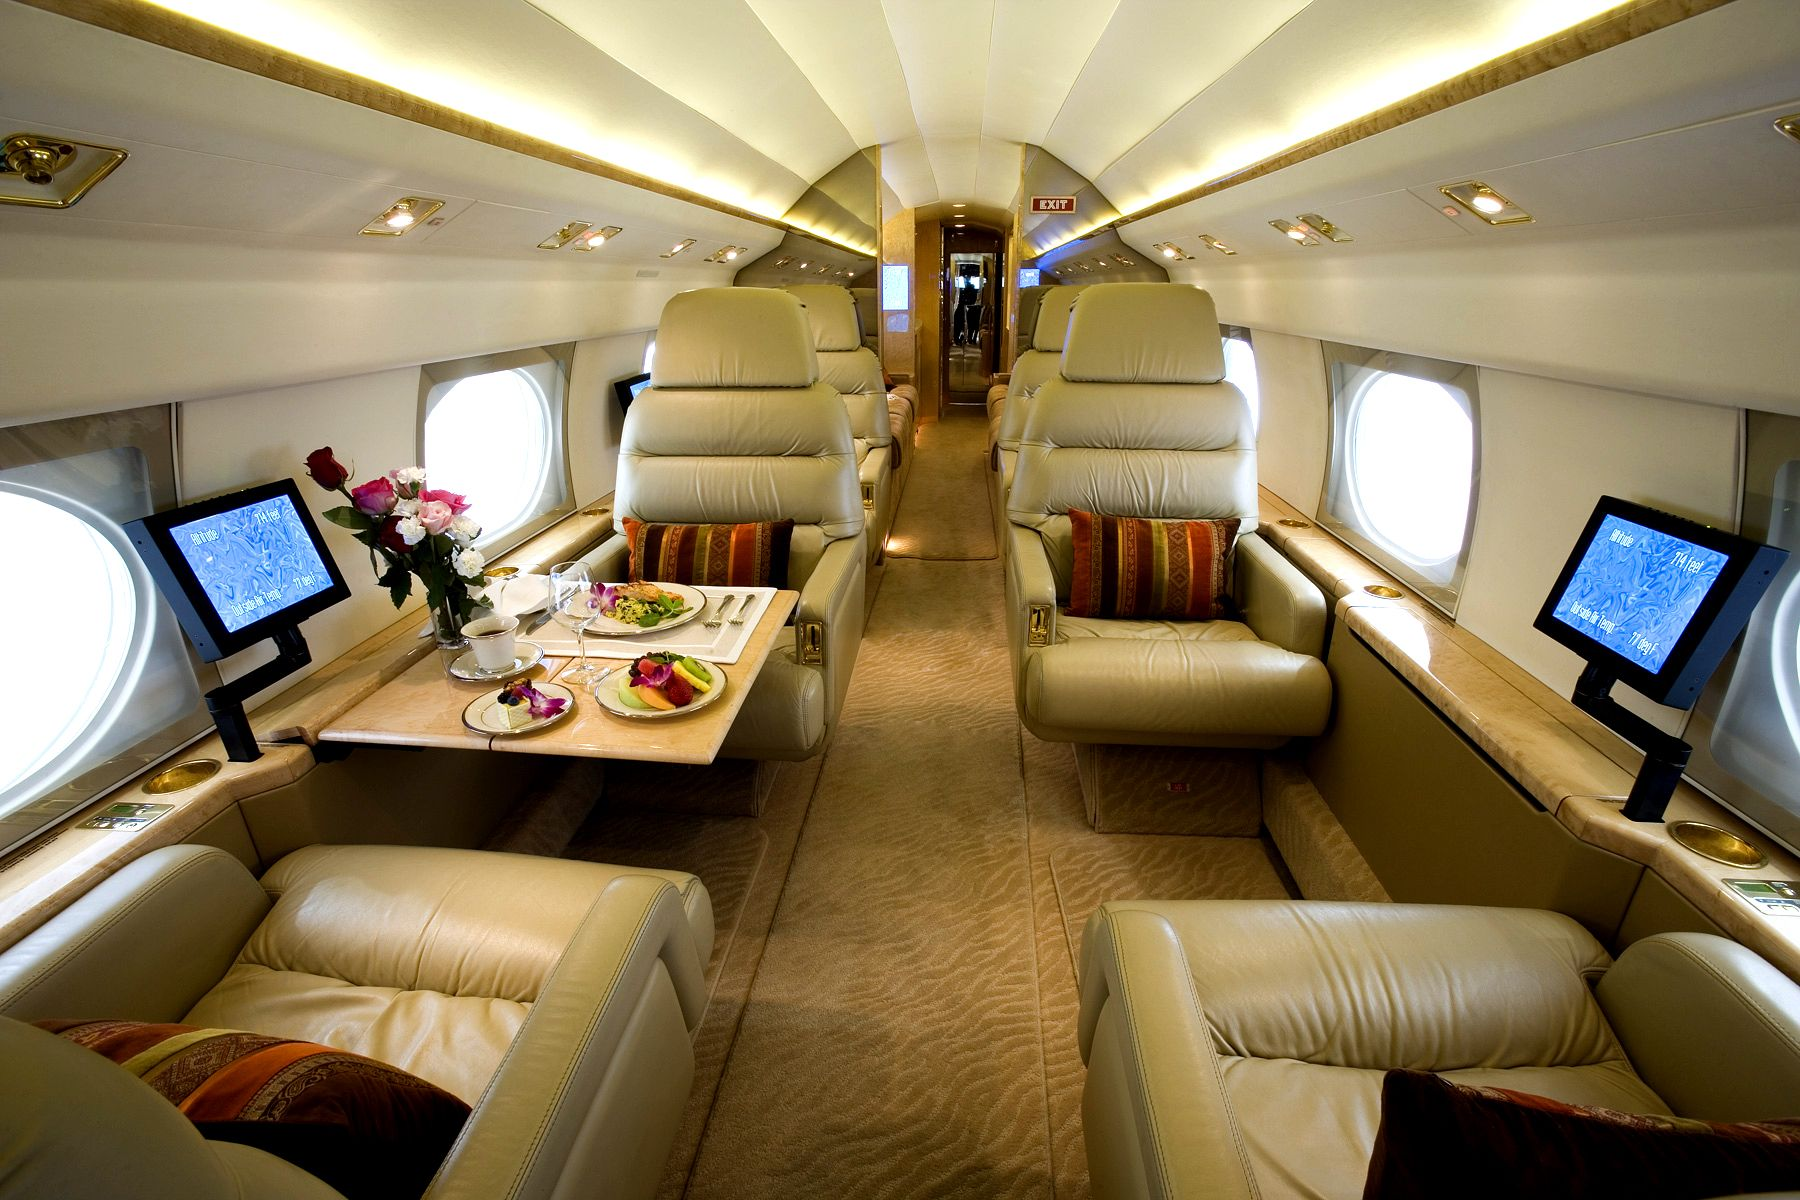 luxury private jets our clients to charter private jet aircraft that fly to thousands of. Black Bedroom Furniture Sets. Home Design Ideas